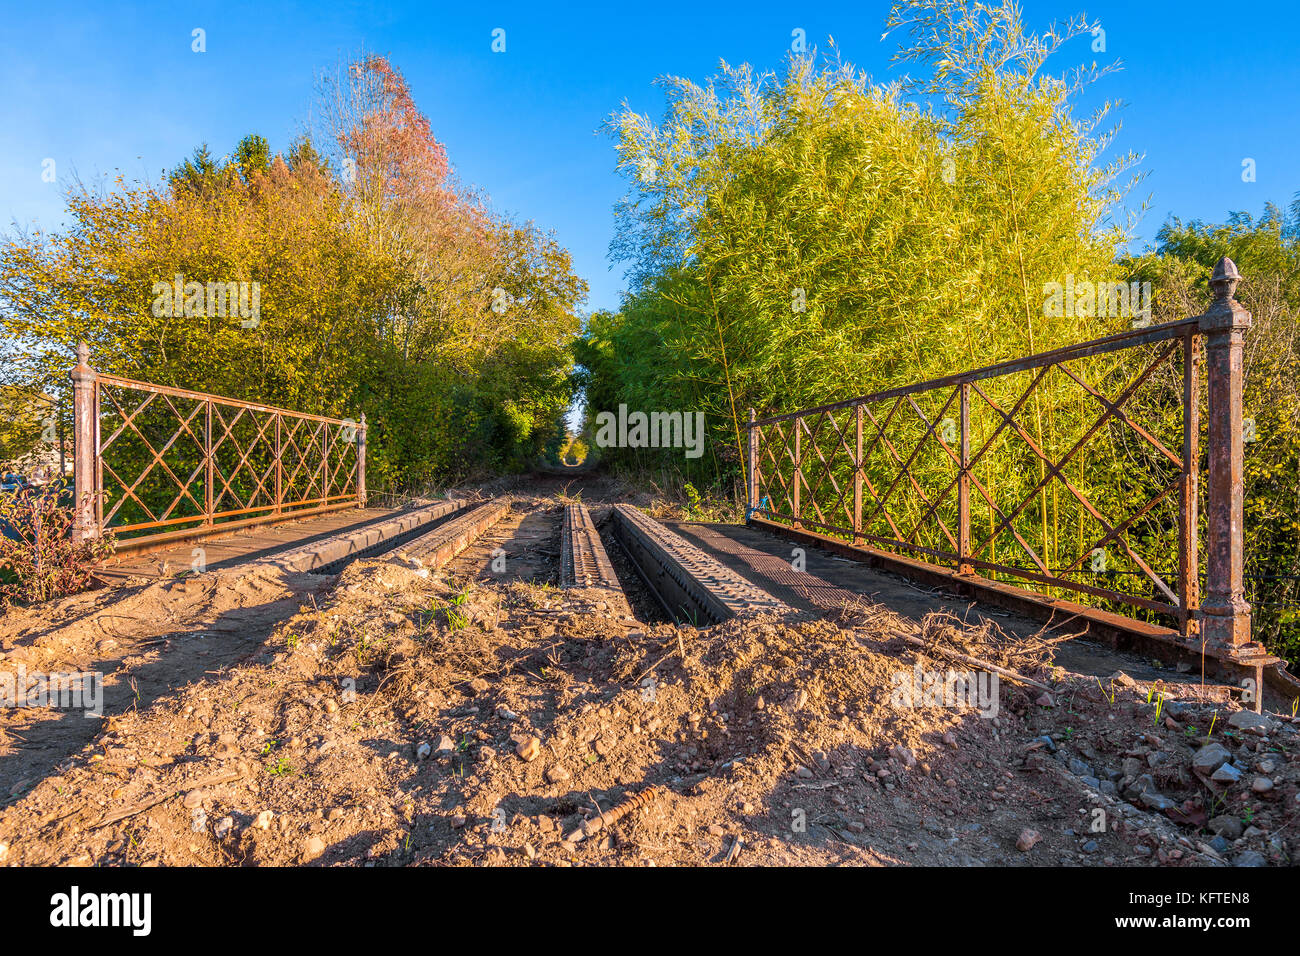 Steel girder bridge remaining on disused / removed railway line - France. - Stock Image